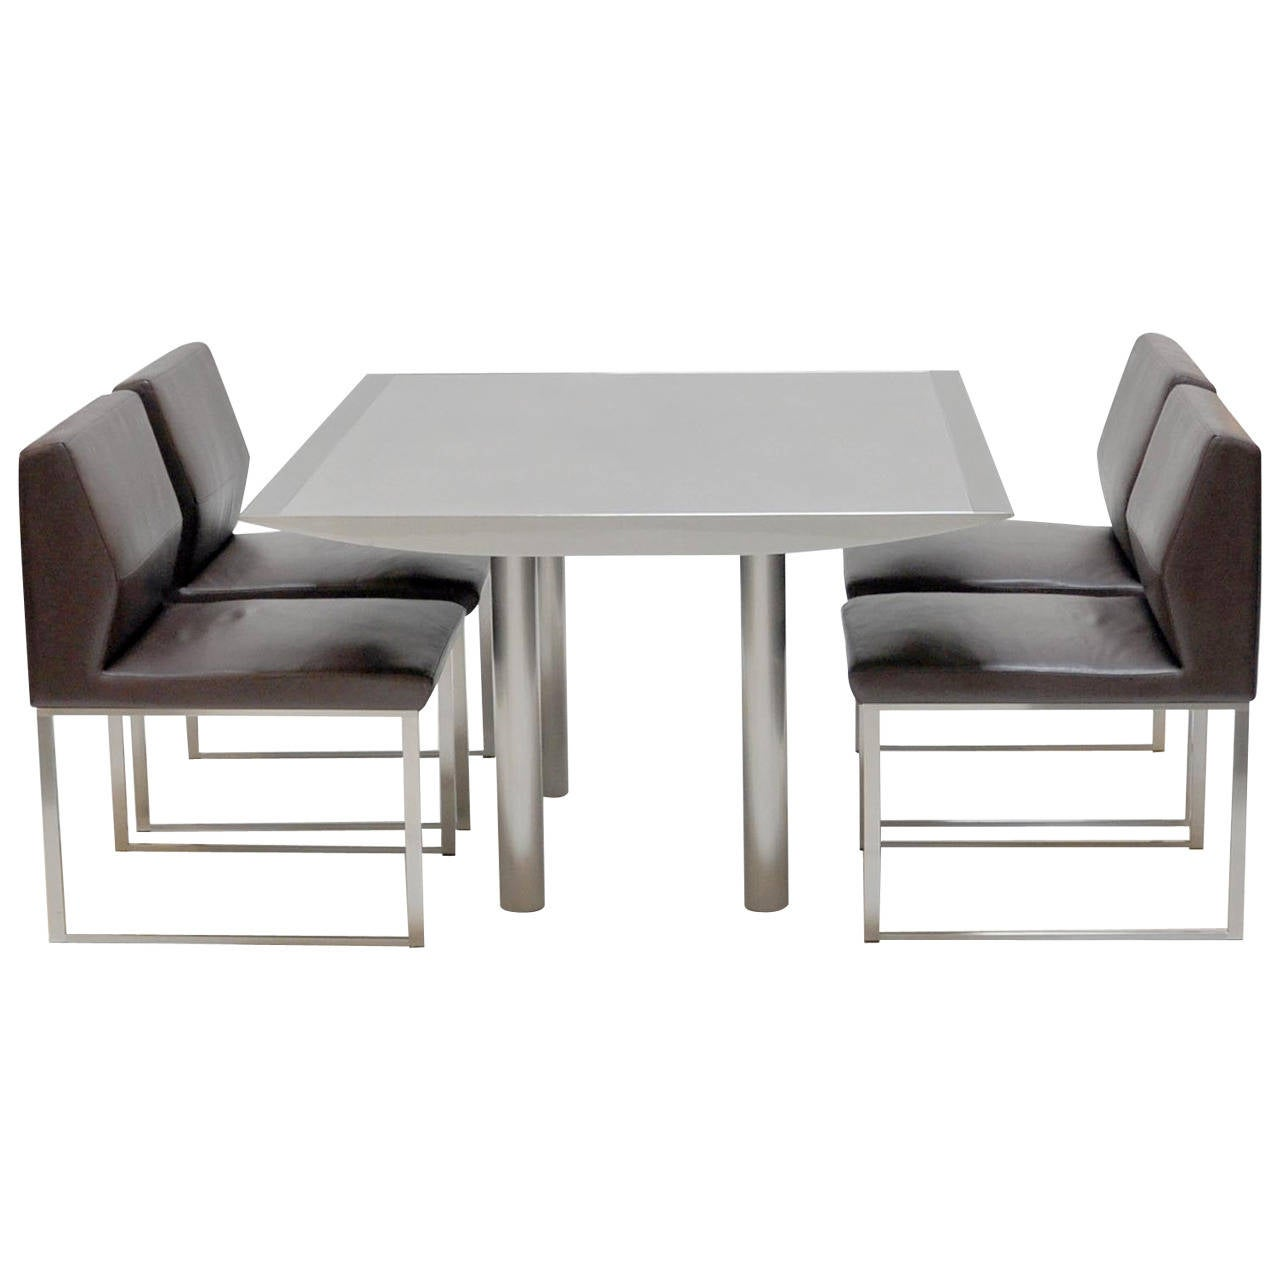 Stanley Jay Friedman for Brueton Table and Four Chairs 1